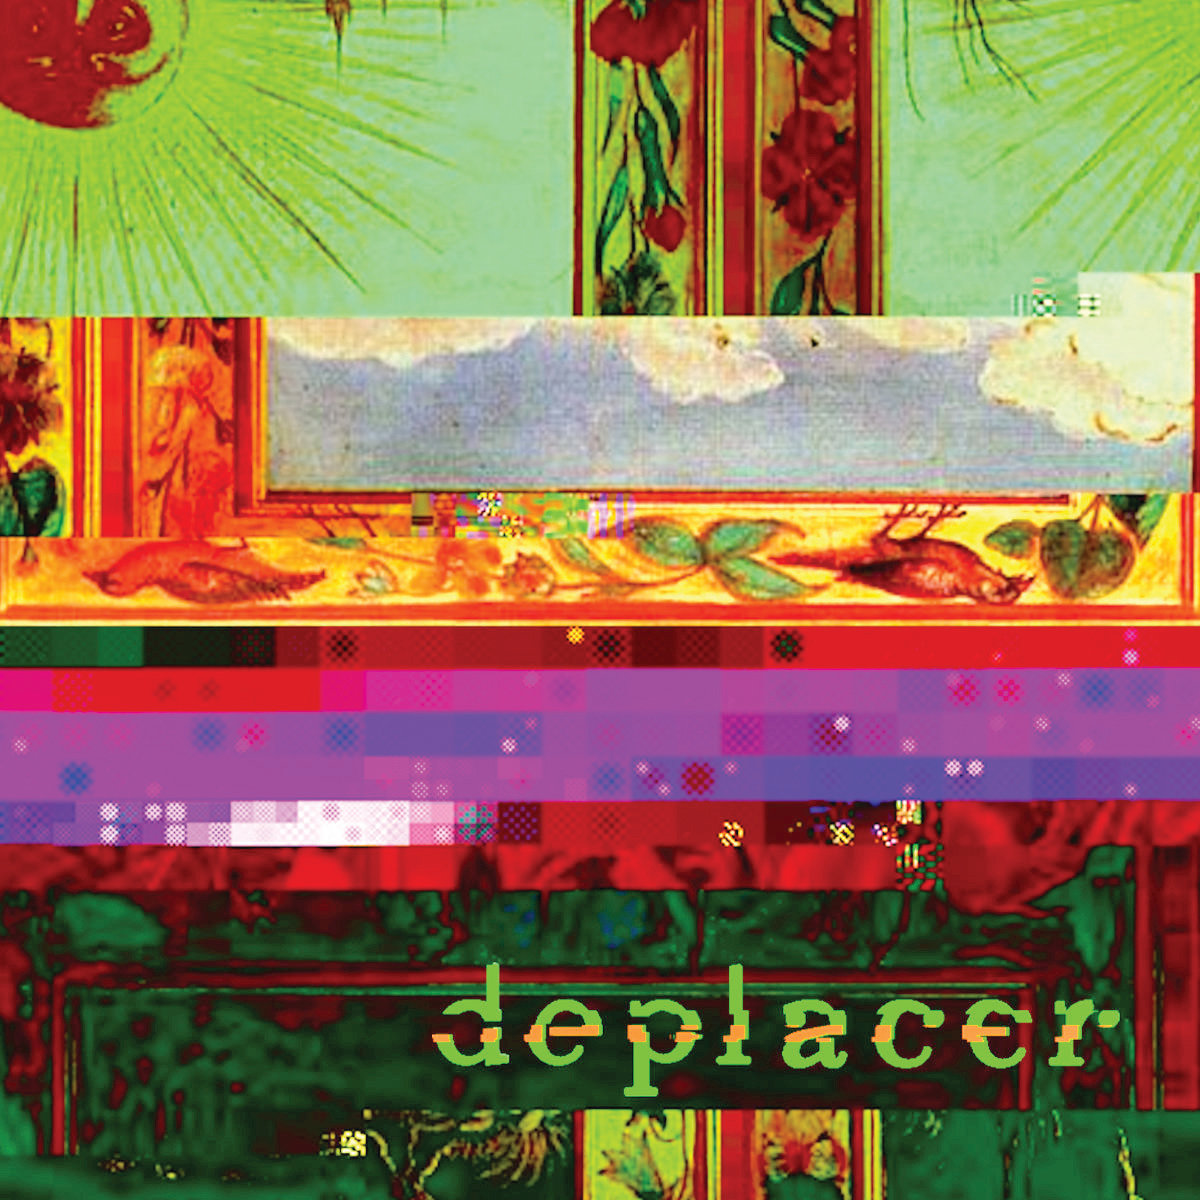 """Deplacer"" is streamed at petejon.com."